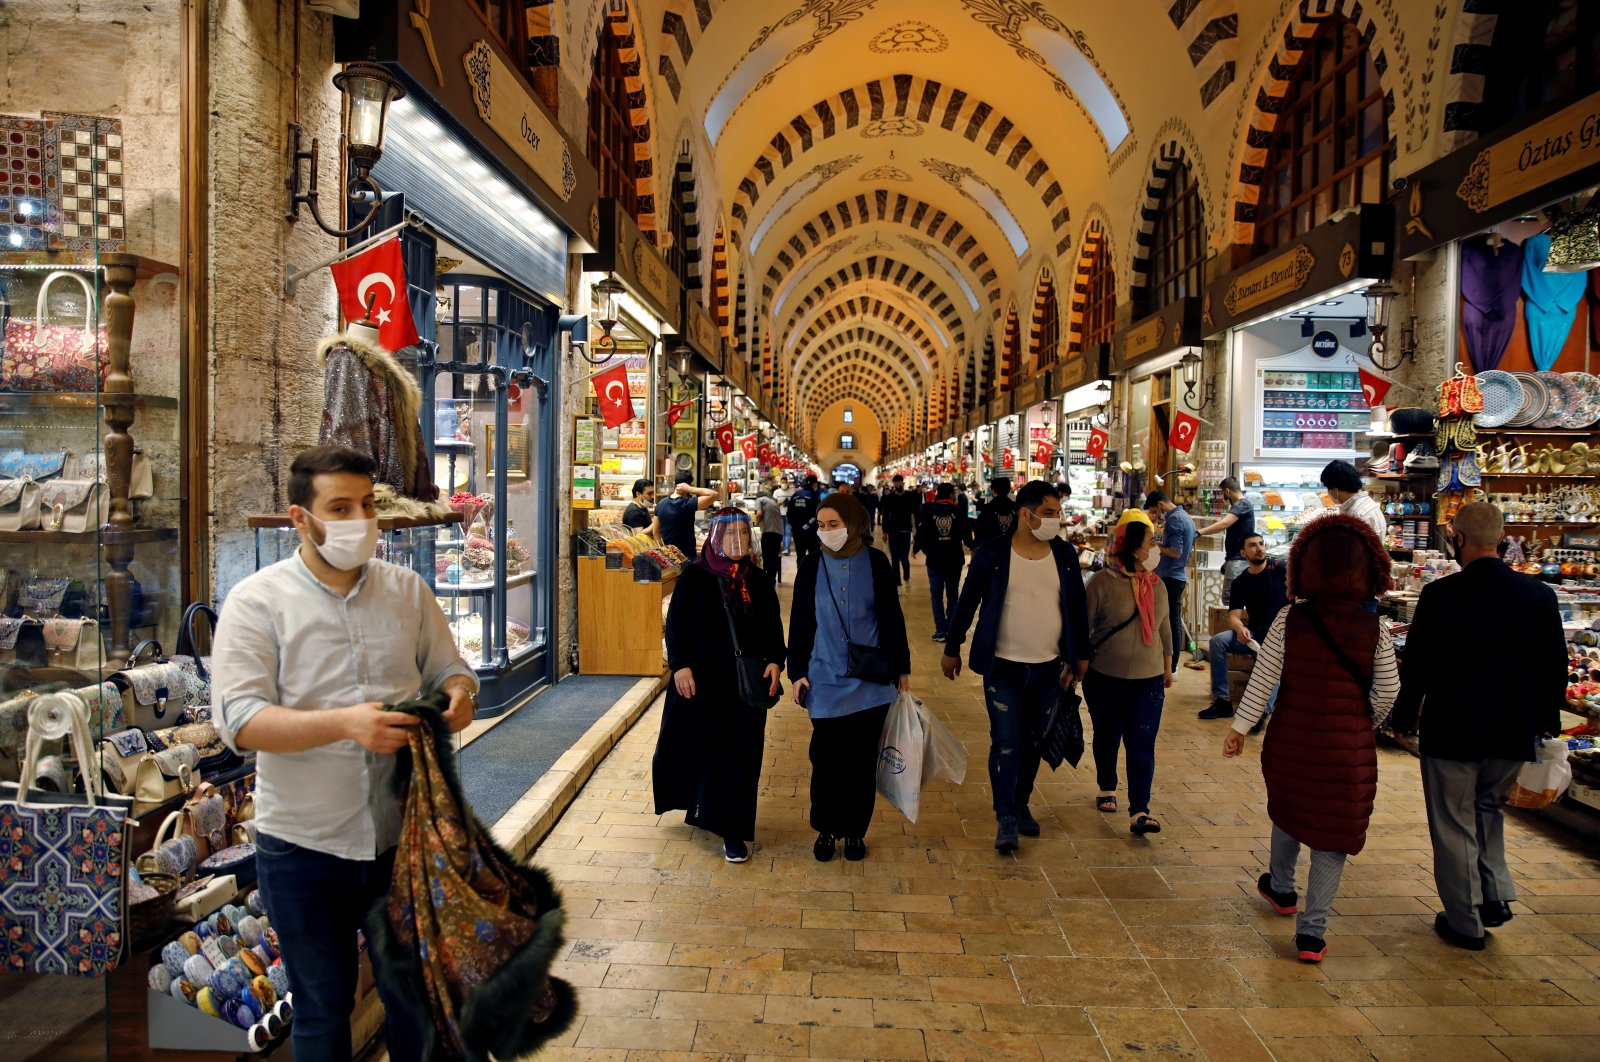 People wearing protective face masks walk at the spice market, also known as the Egyptian Bazaar, Istanbul, June 1, 2020. (REUTERS Photo)